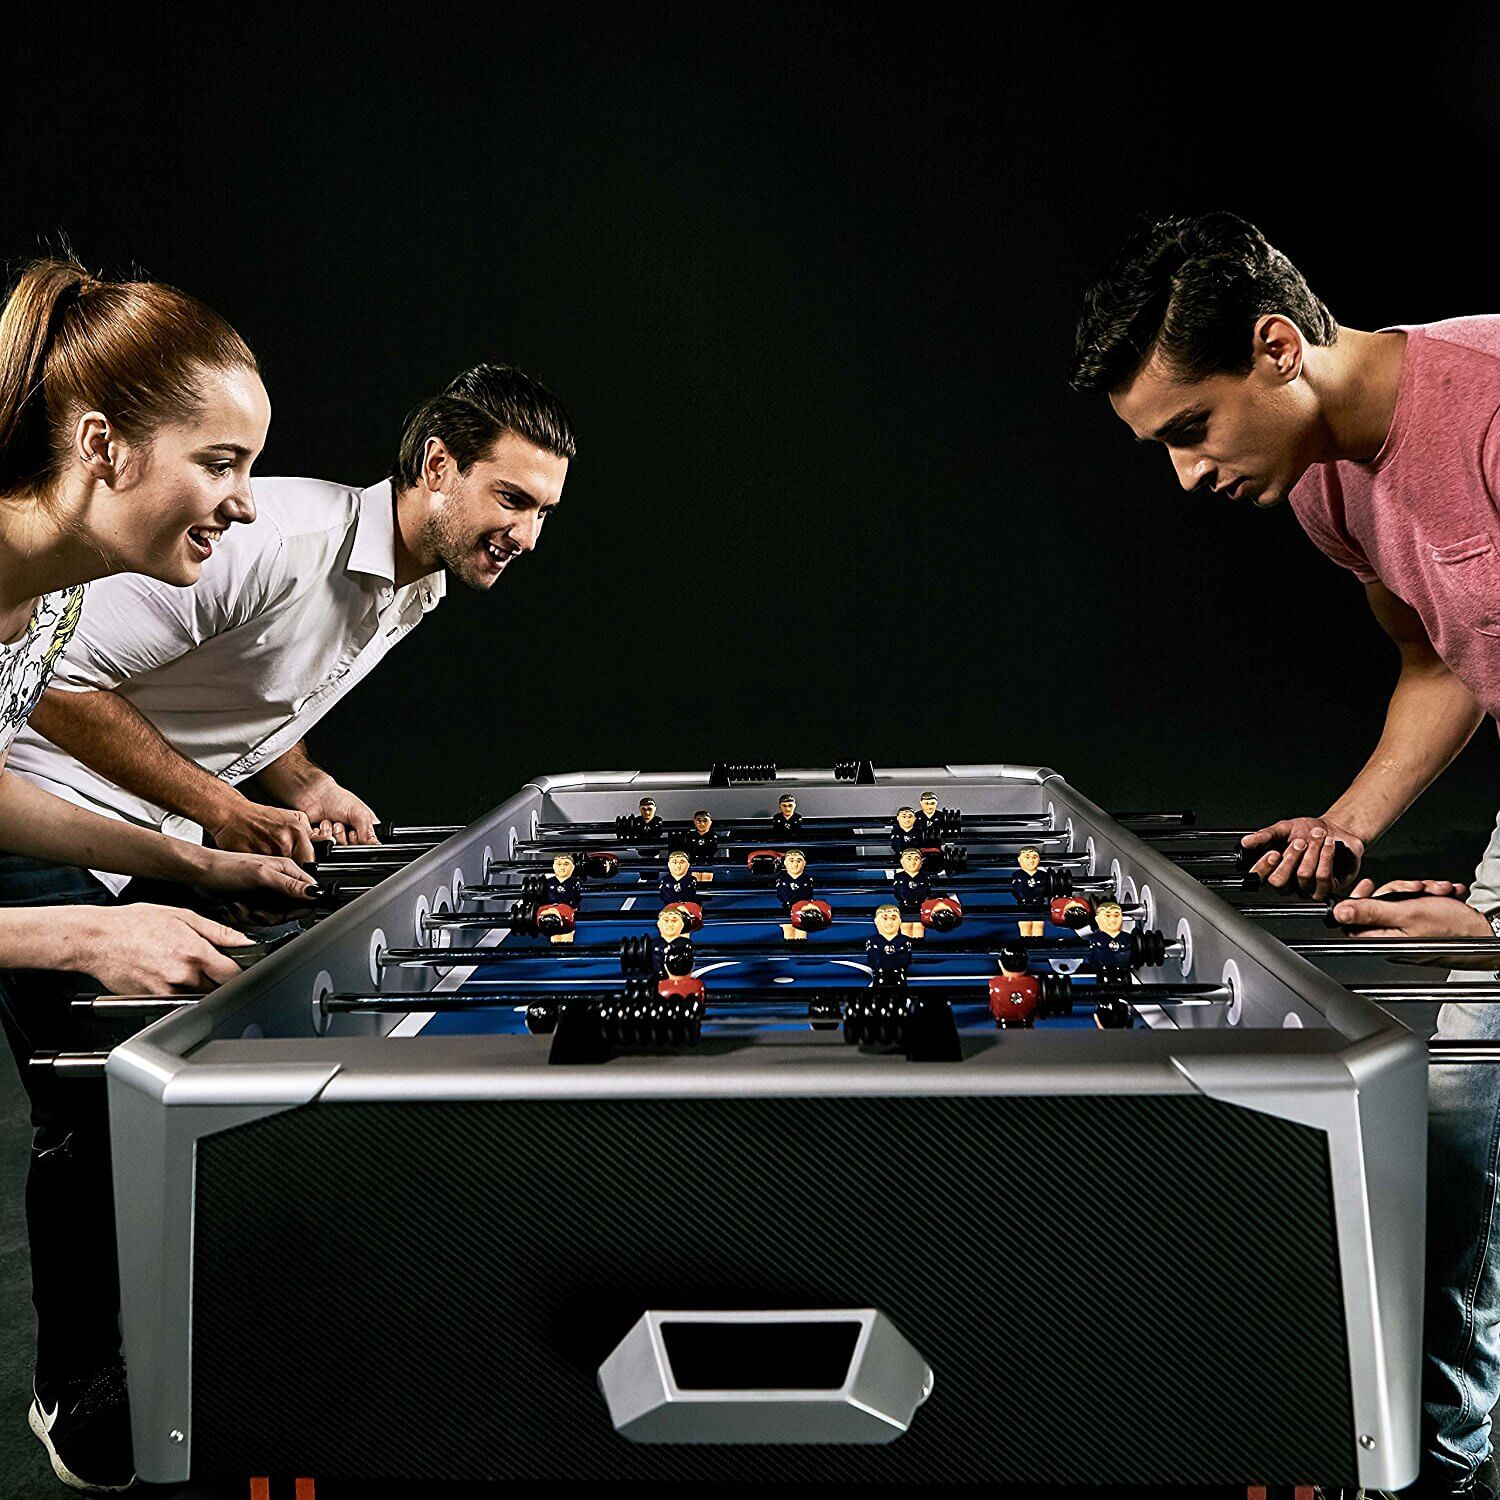 Review of EA Sports Foosball Table